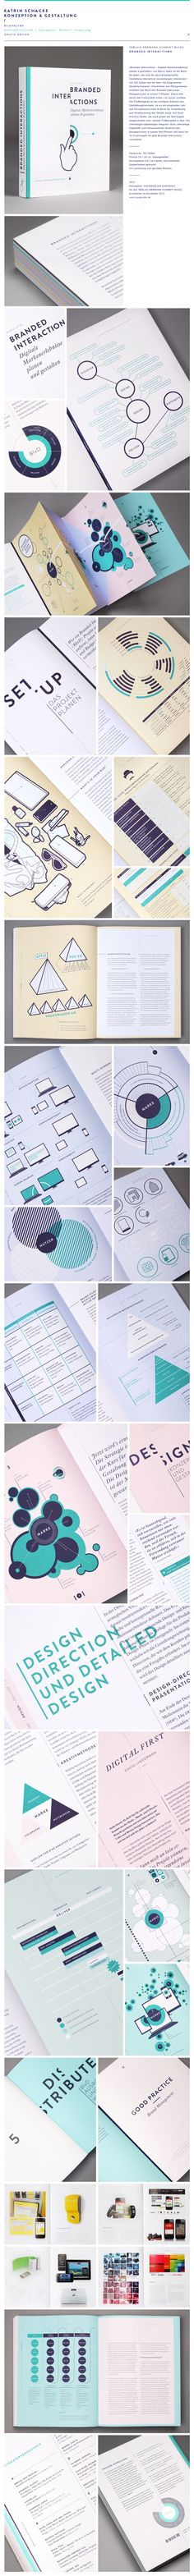 """The book """"Branded Interactions"""" is perfectly designed. It is full of diagrams and  illustrations that facilitate the understanding of the content. The book has a consistent design system. Each chapter has it's own color of pages which allows a quick navigation - you can even see the chapters from the side of the book. #Design #Infografik #Diagram #Typography"""